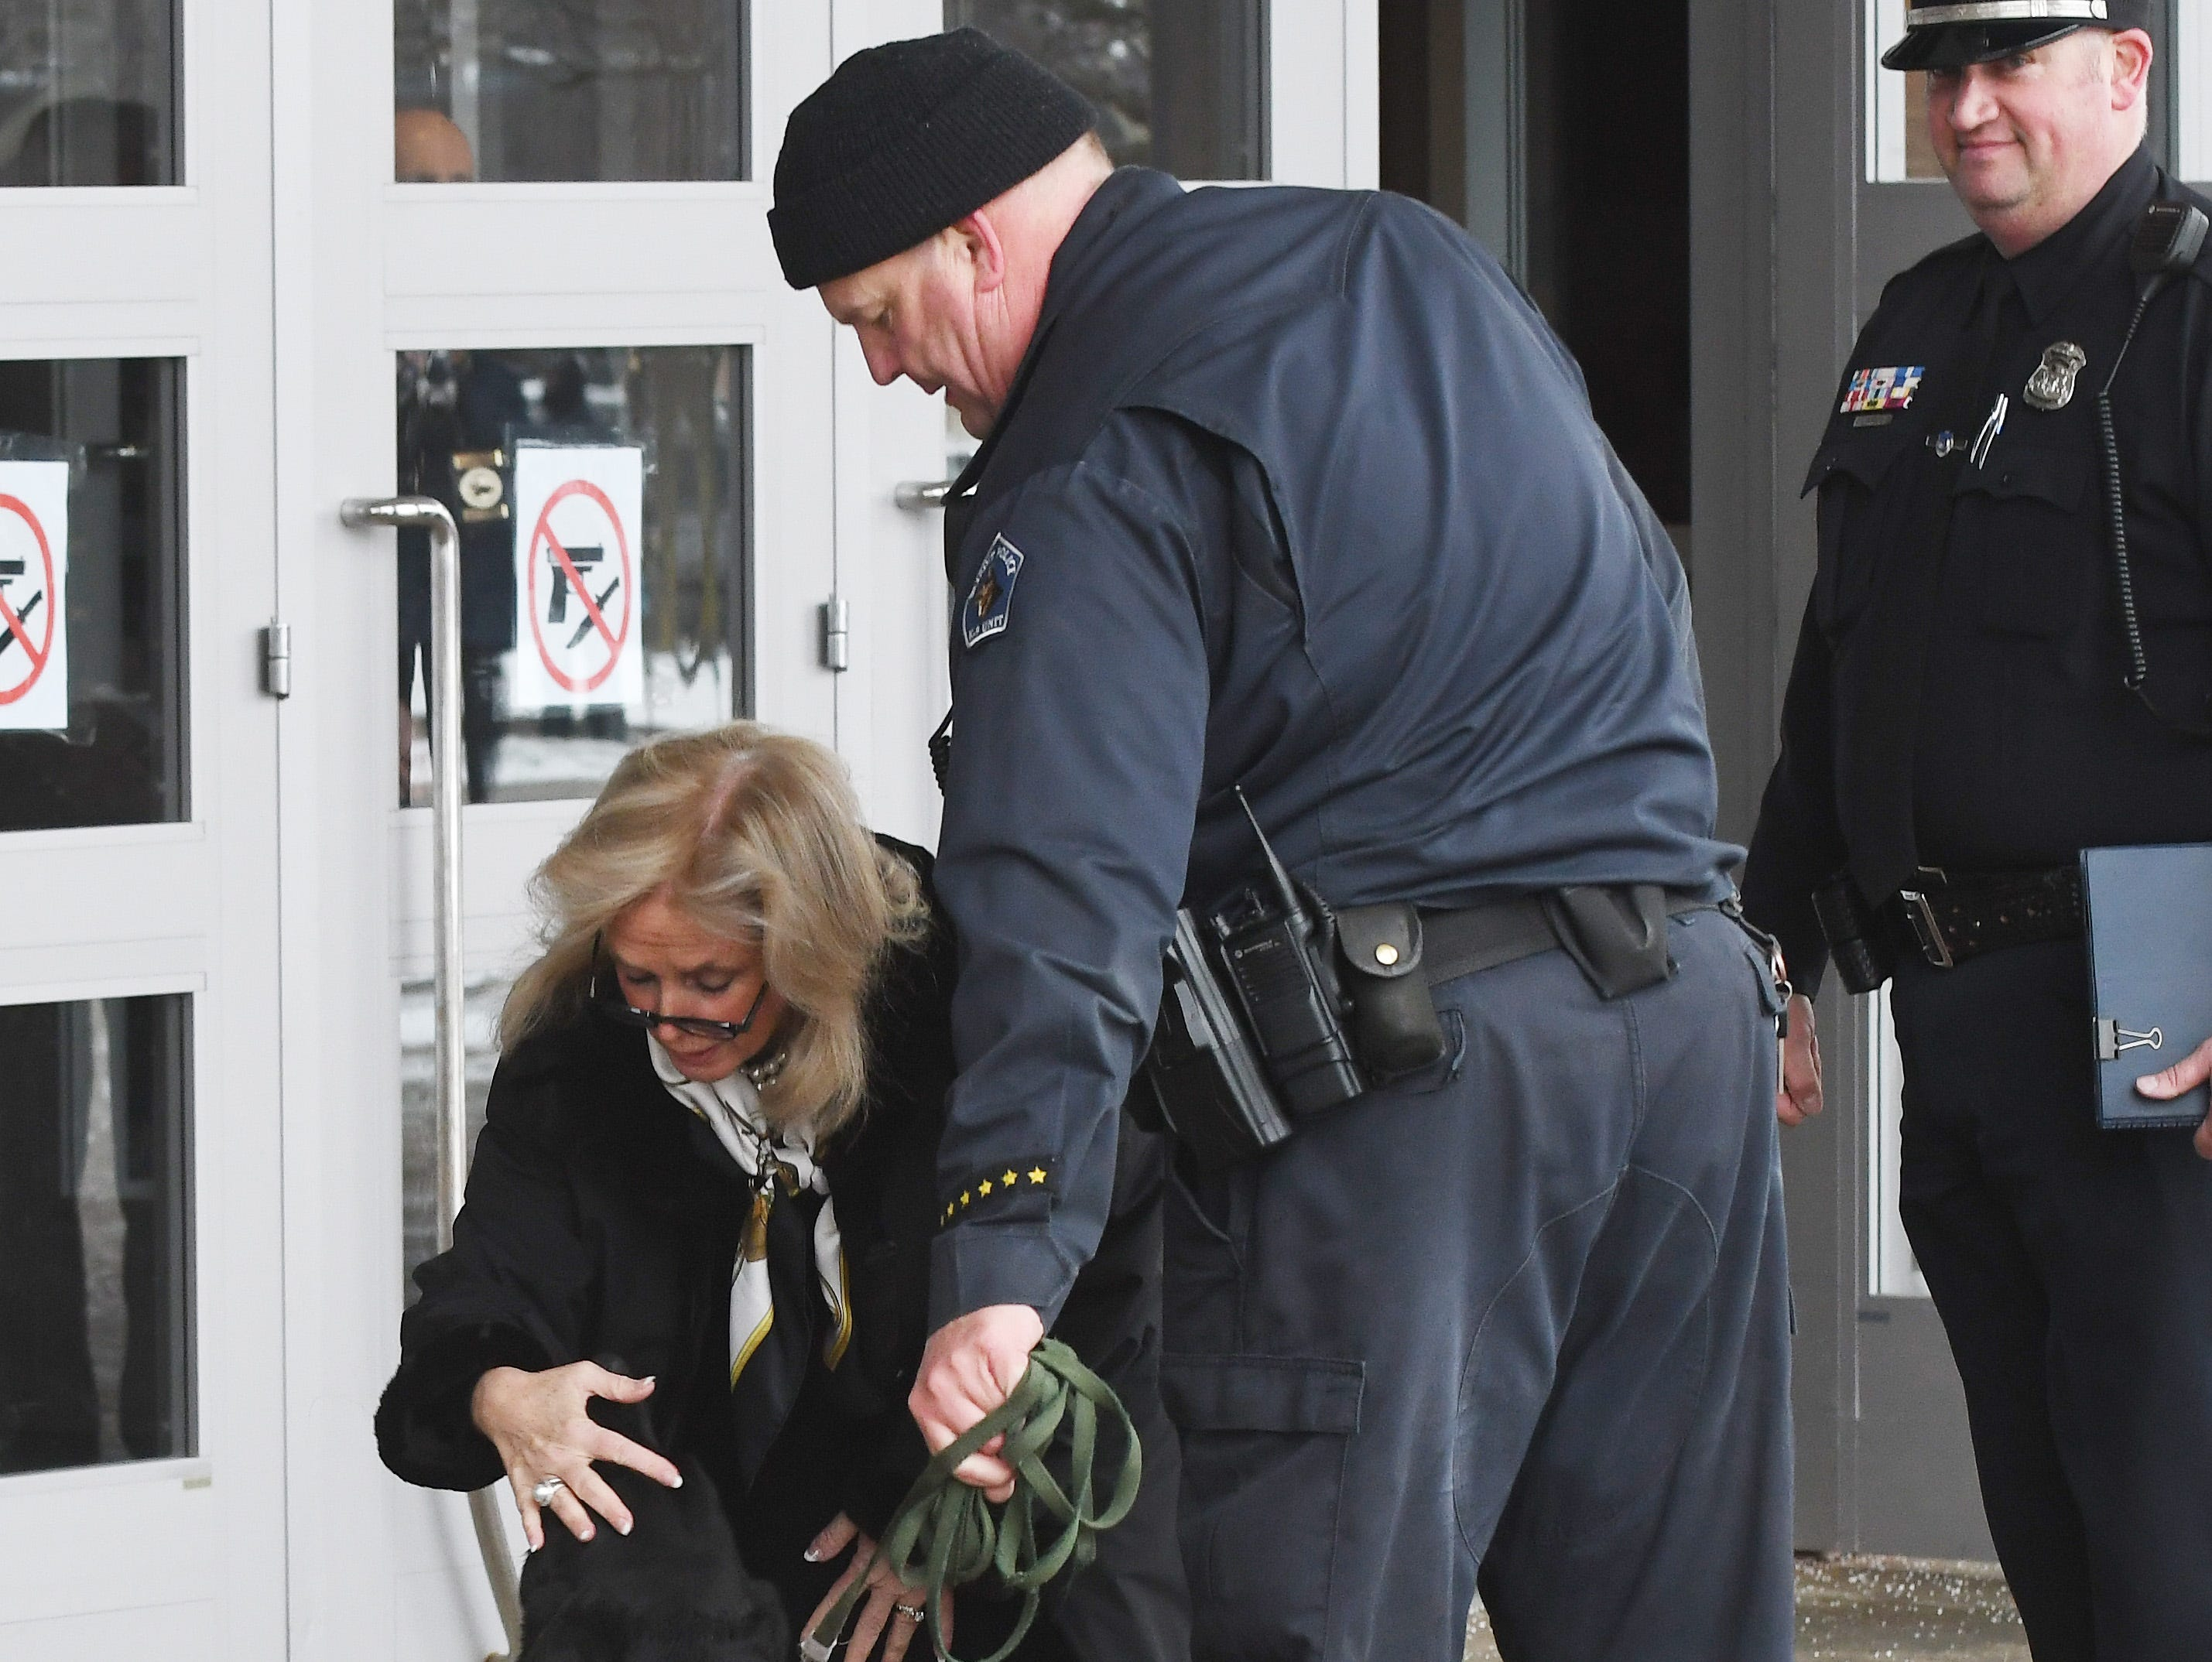 Debbie Dingell arrives, stopping to pet a Dearborn police dog, before the public viewing begins.